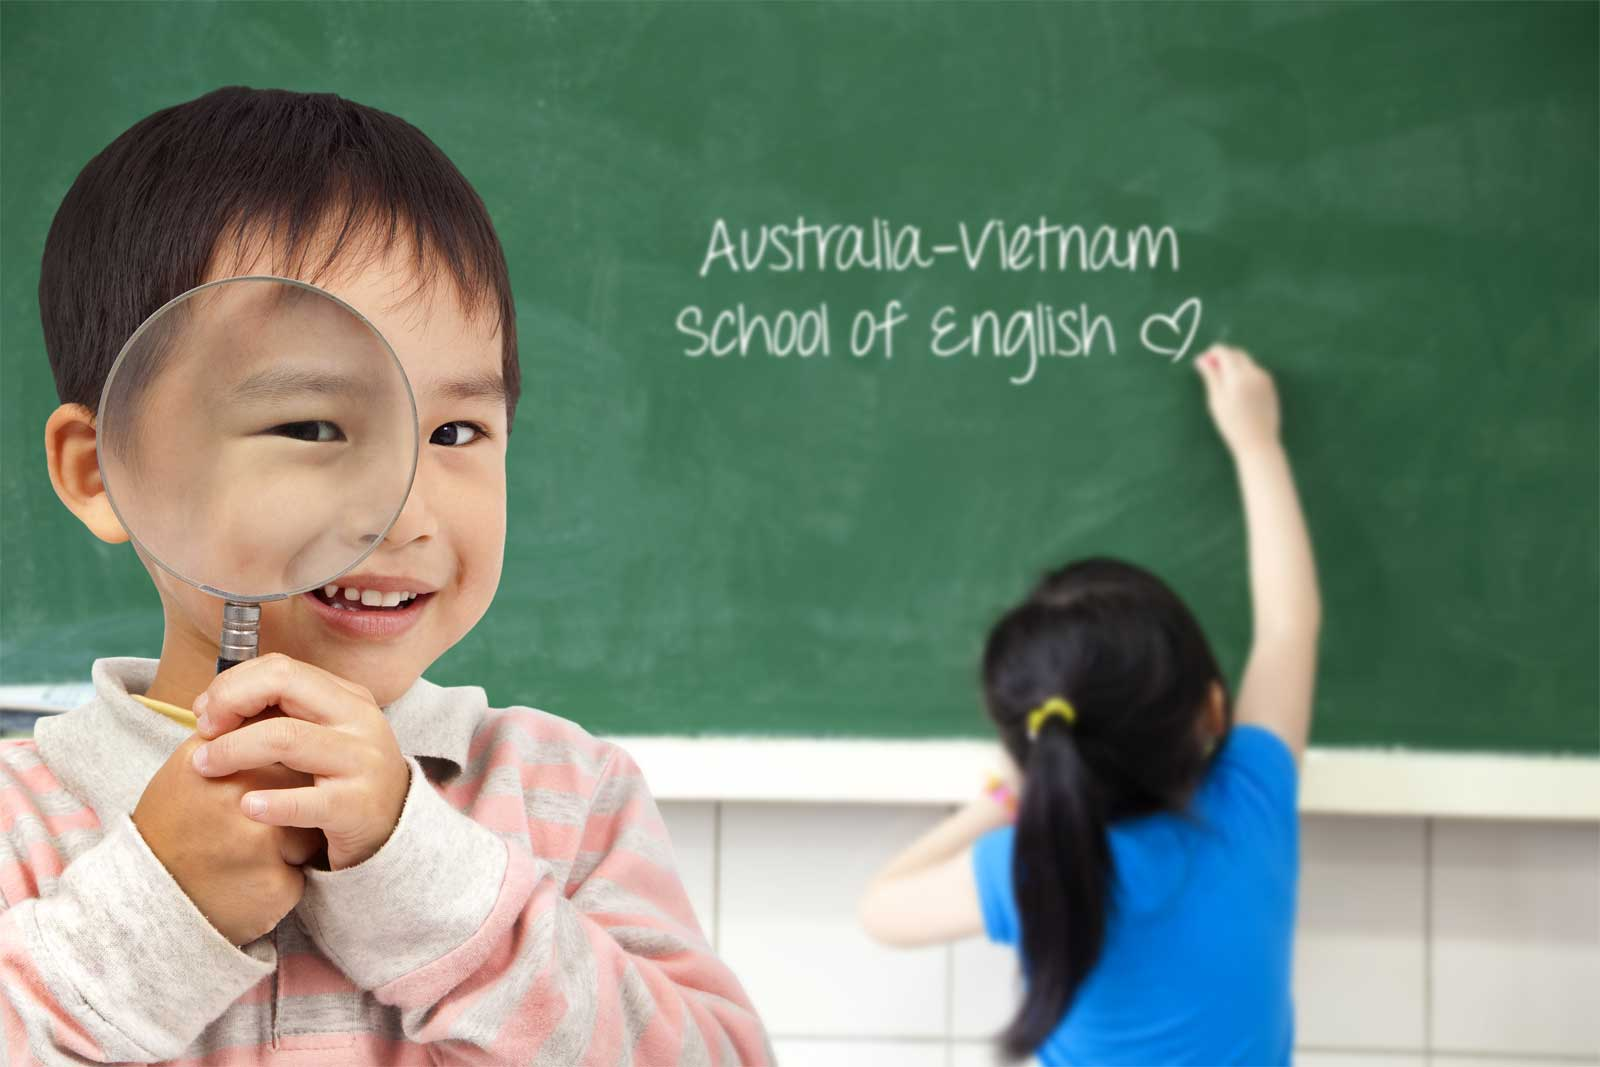 Vietnam education system